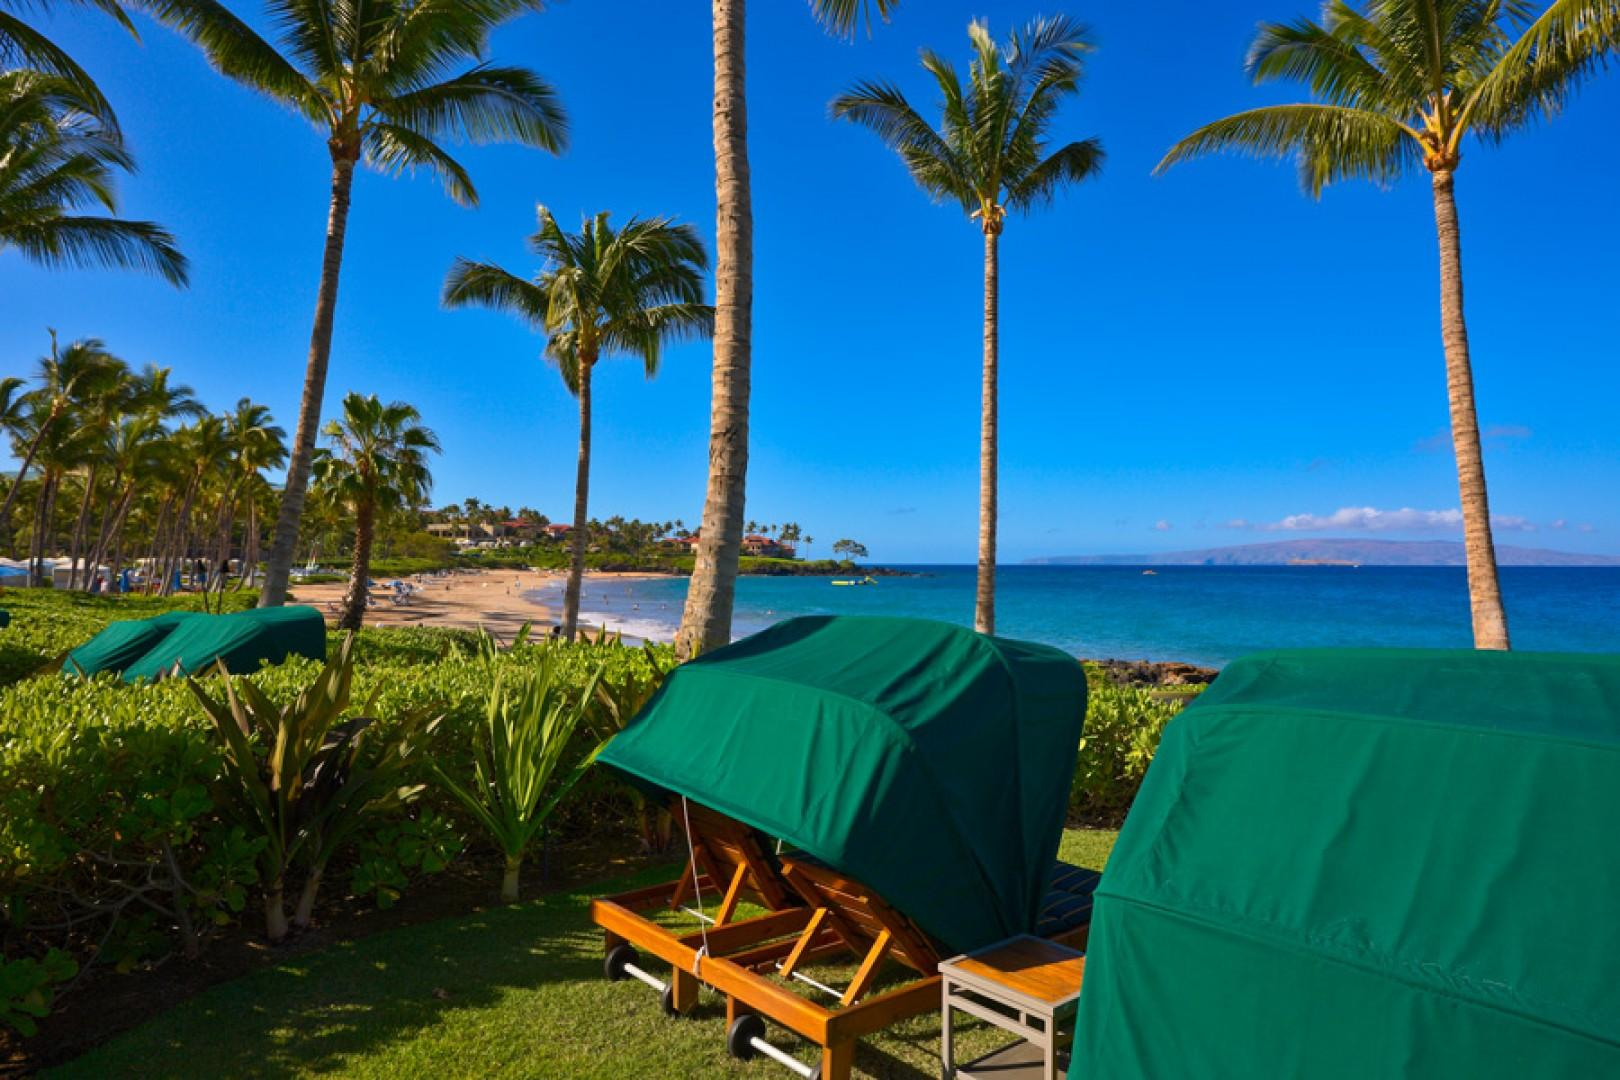 Complimentary No-Charge! Oceanfront Shaded Personal Casabella Chaise Lounge Chairs for Guests of Wailea Beach Villas Directly on Wailea Beach